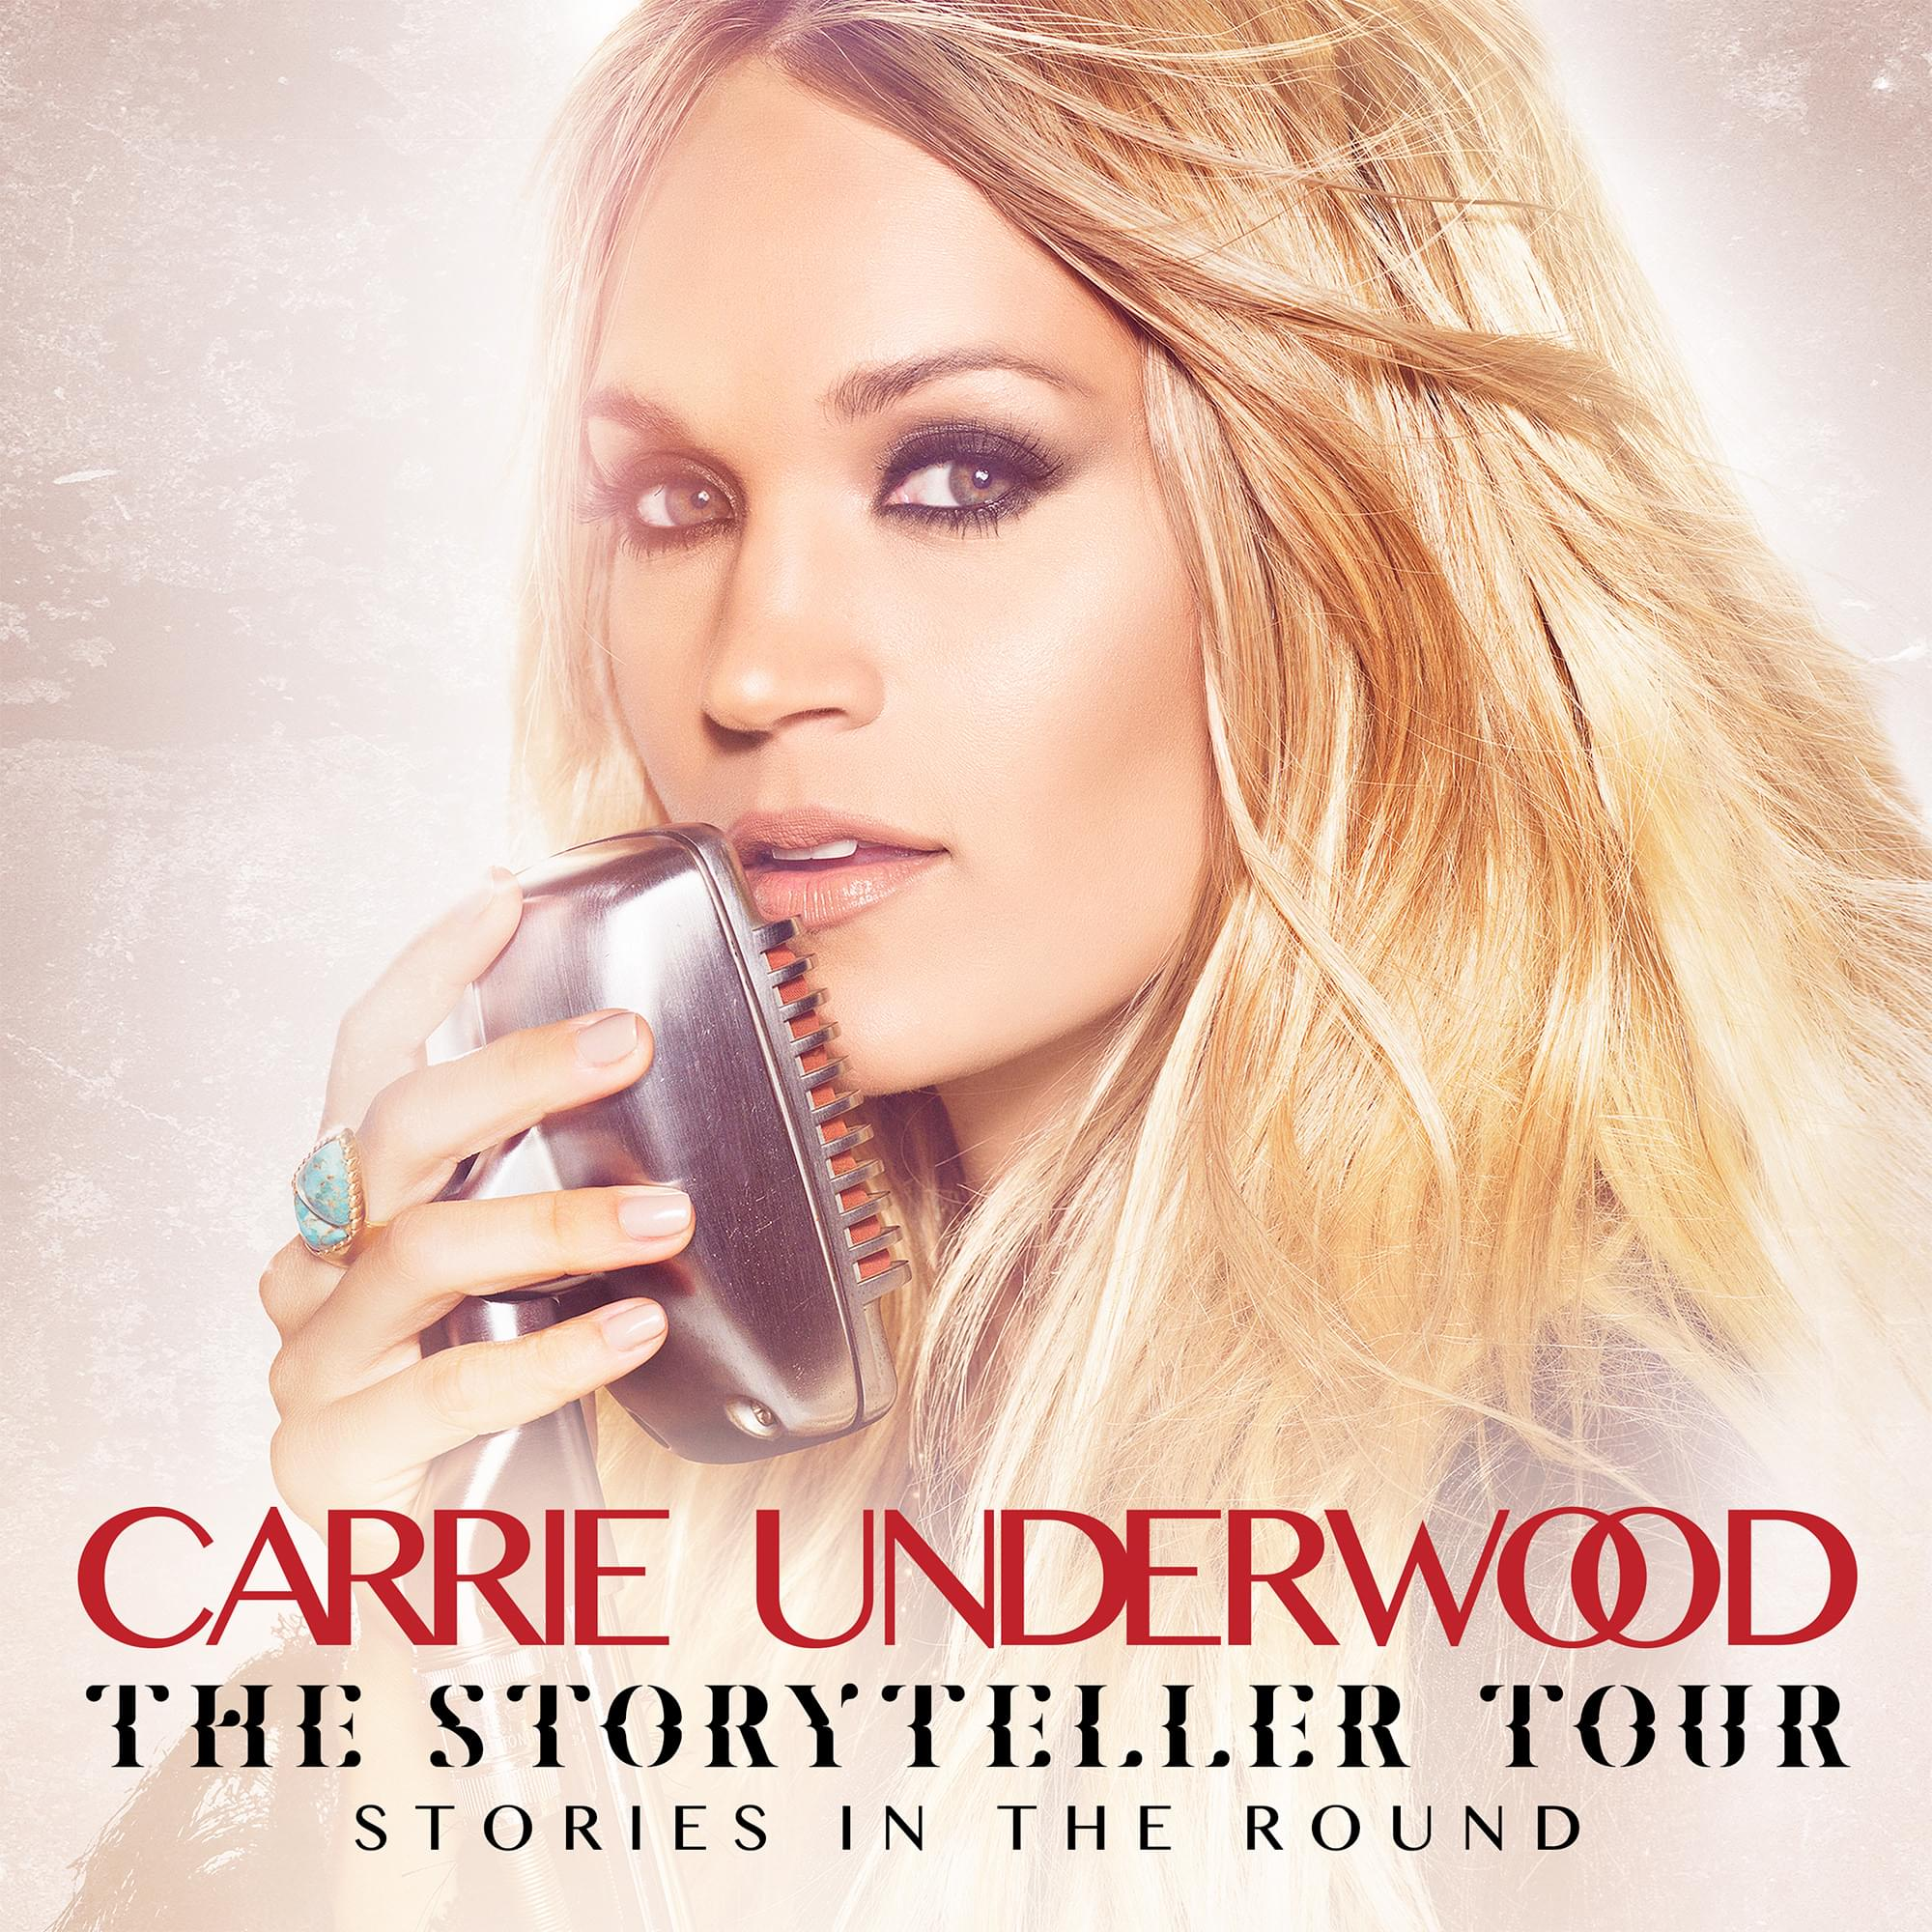 Carrie Underwood Announces 2016 Tour!